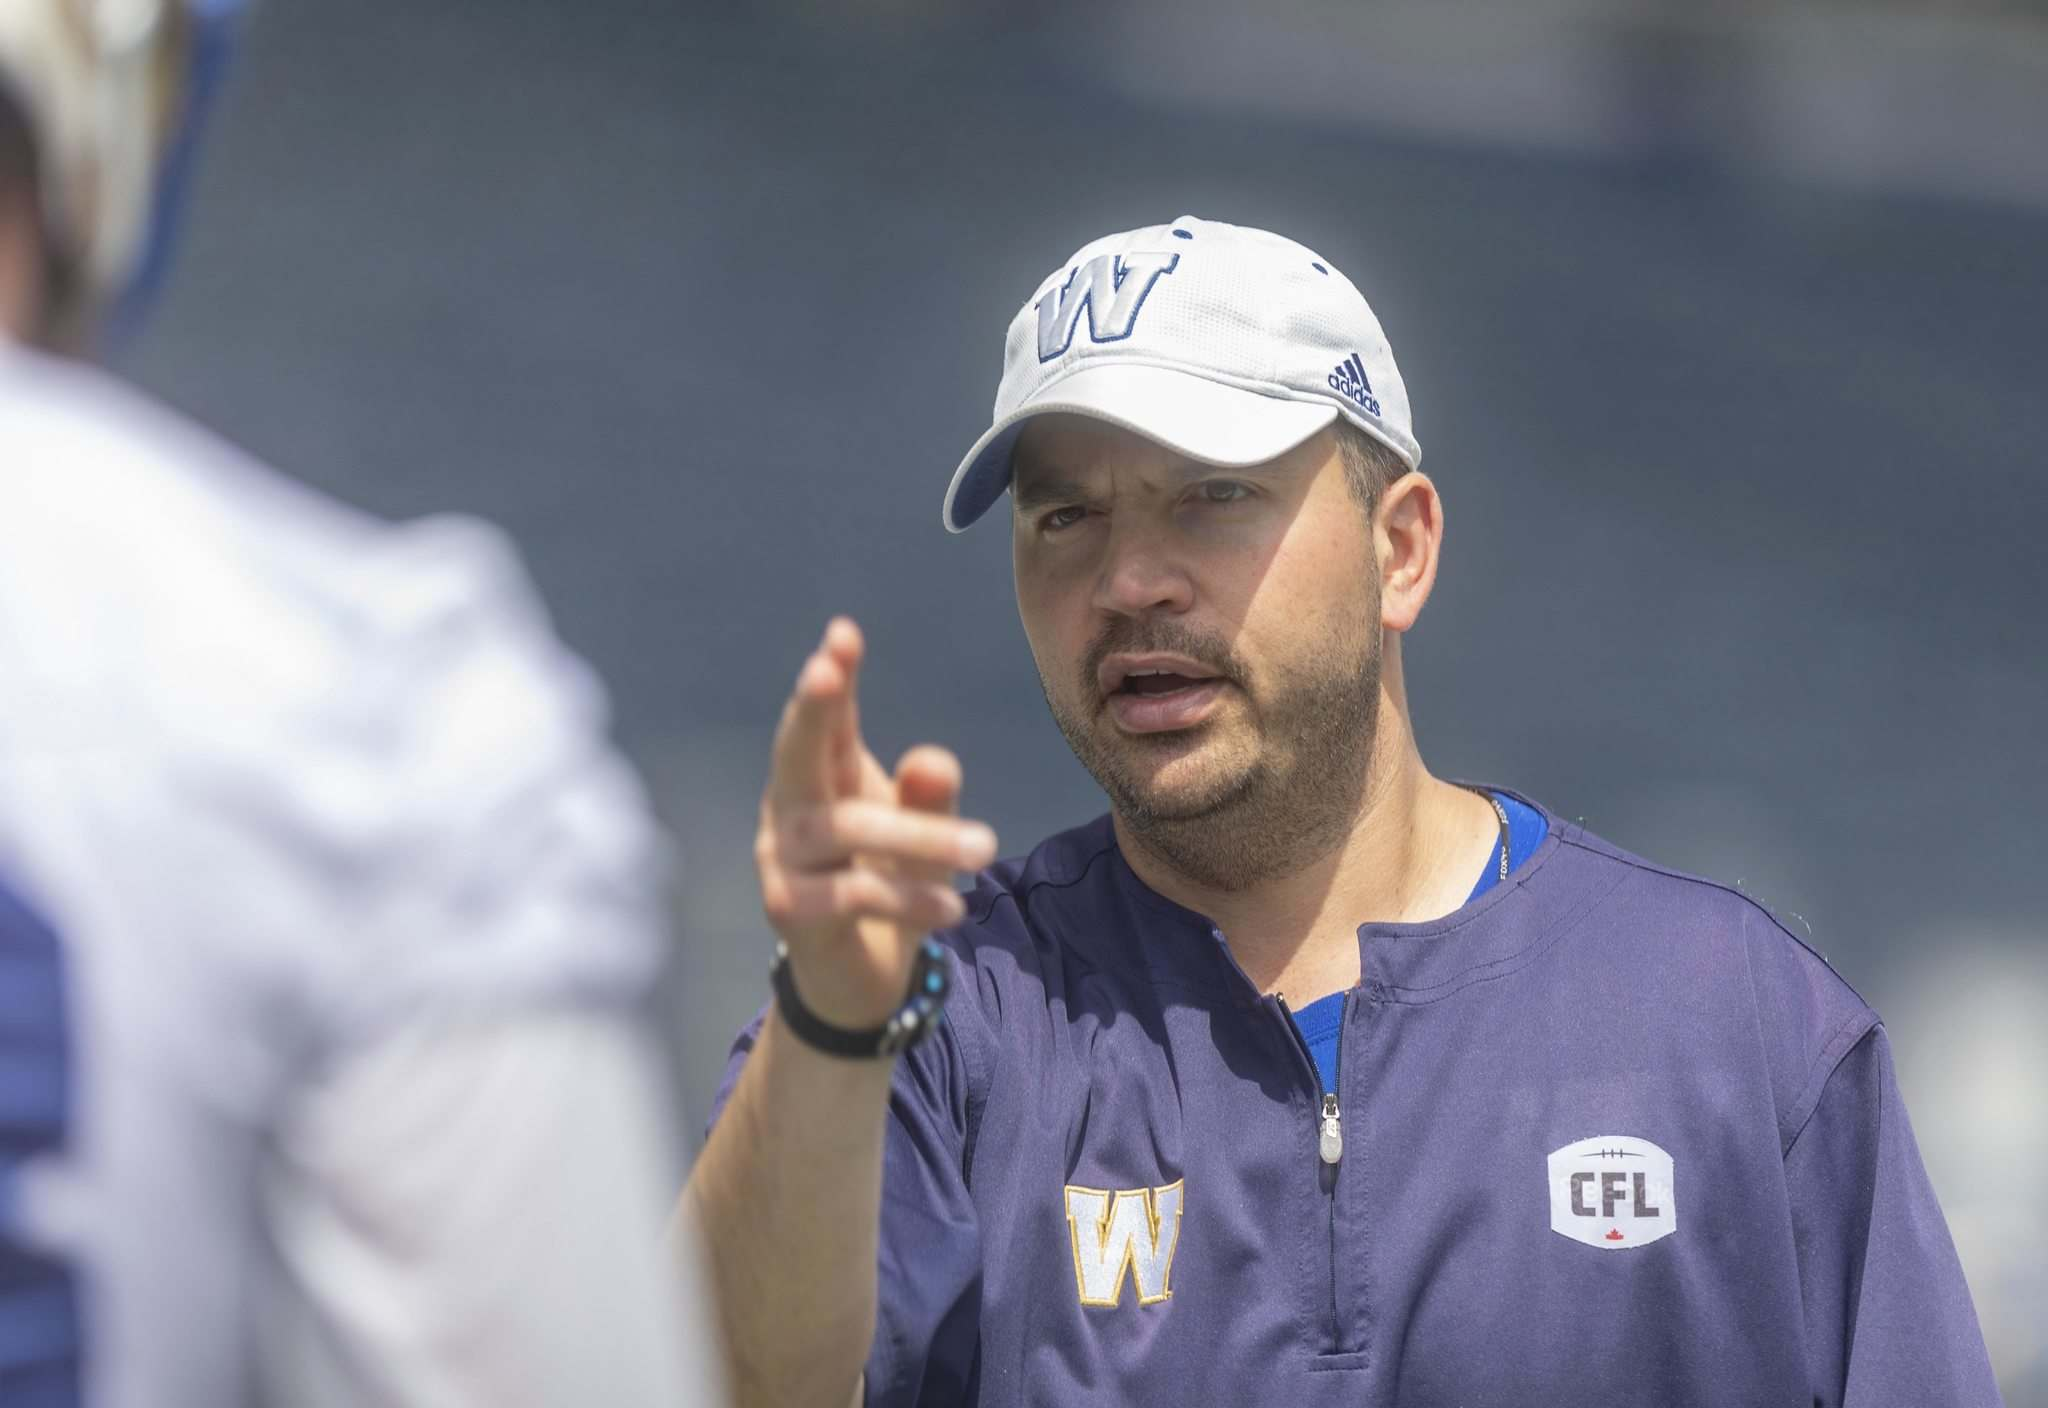 'We've got our work cut out for us': Bombers O-line coach